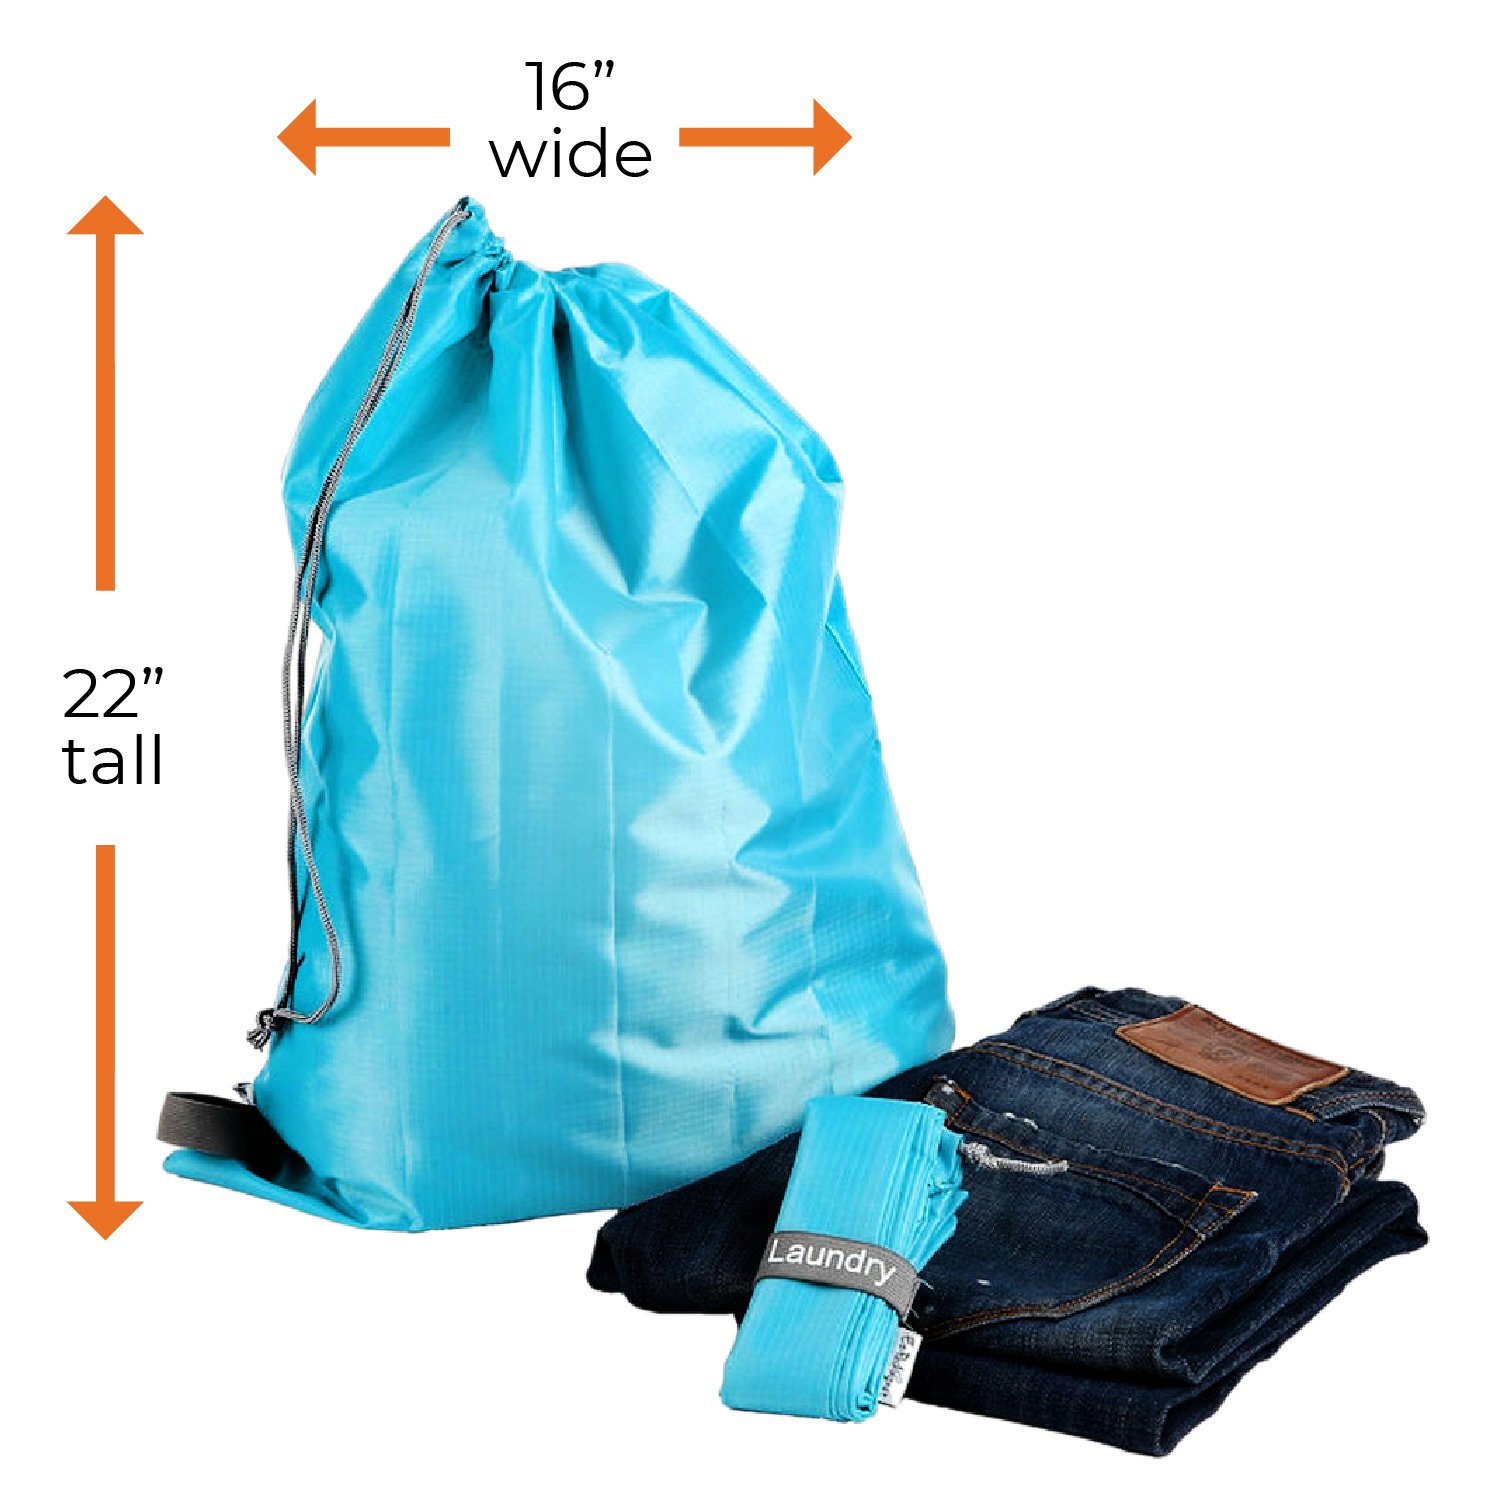 """39bb40ea1eca EzPacking Travel Laundry Bag with Drawstring/Foldable Compact Lightweight  Small Travel Size for Suitcase / (22"""" X 16"""") / Clean Dirty Clothes Wash ..."""